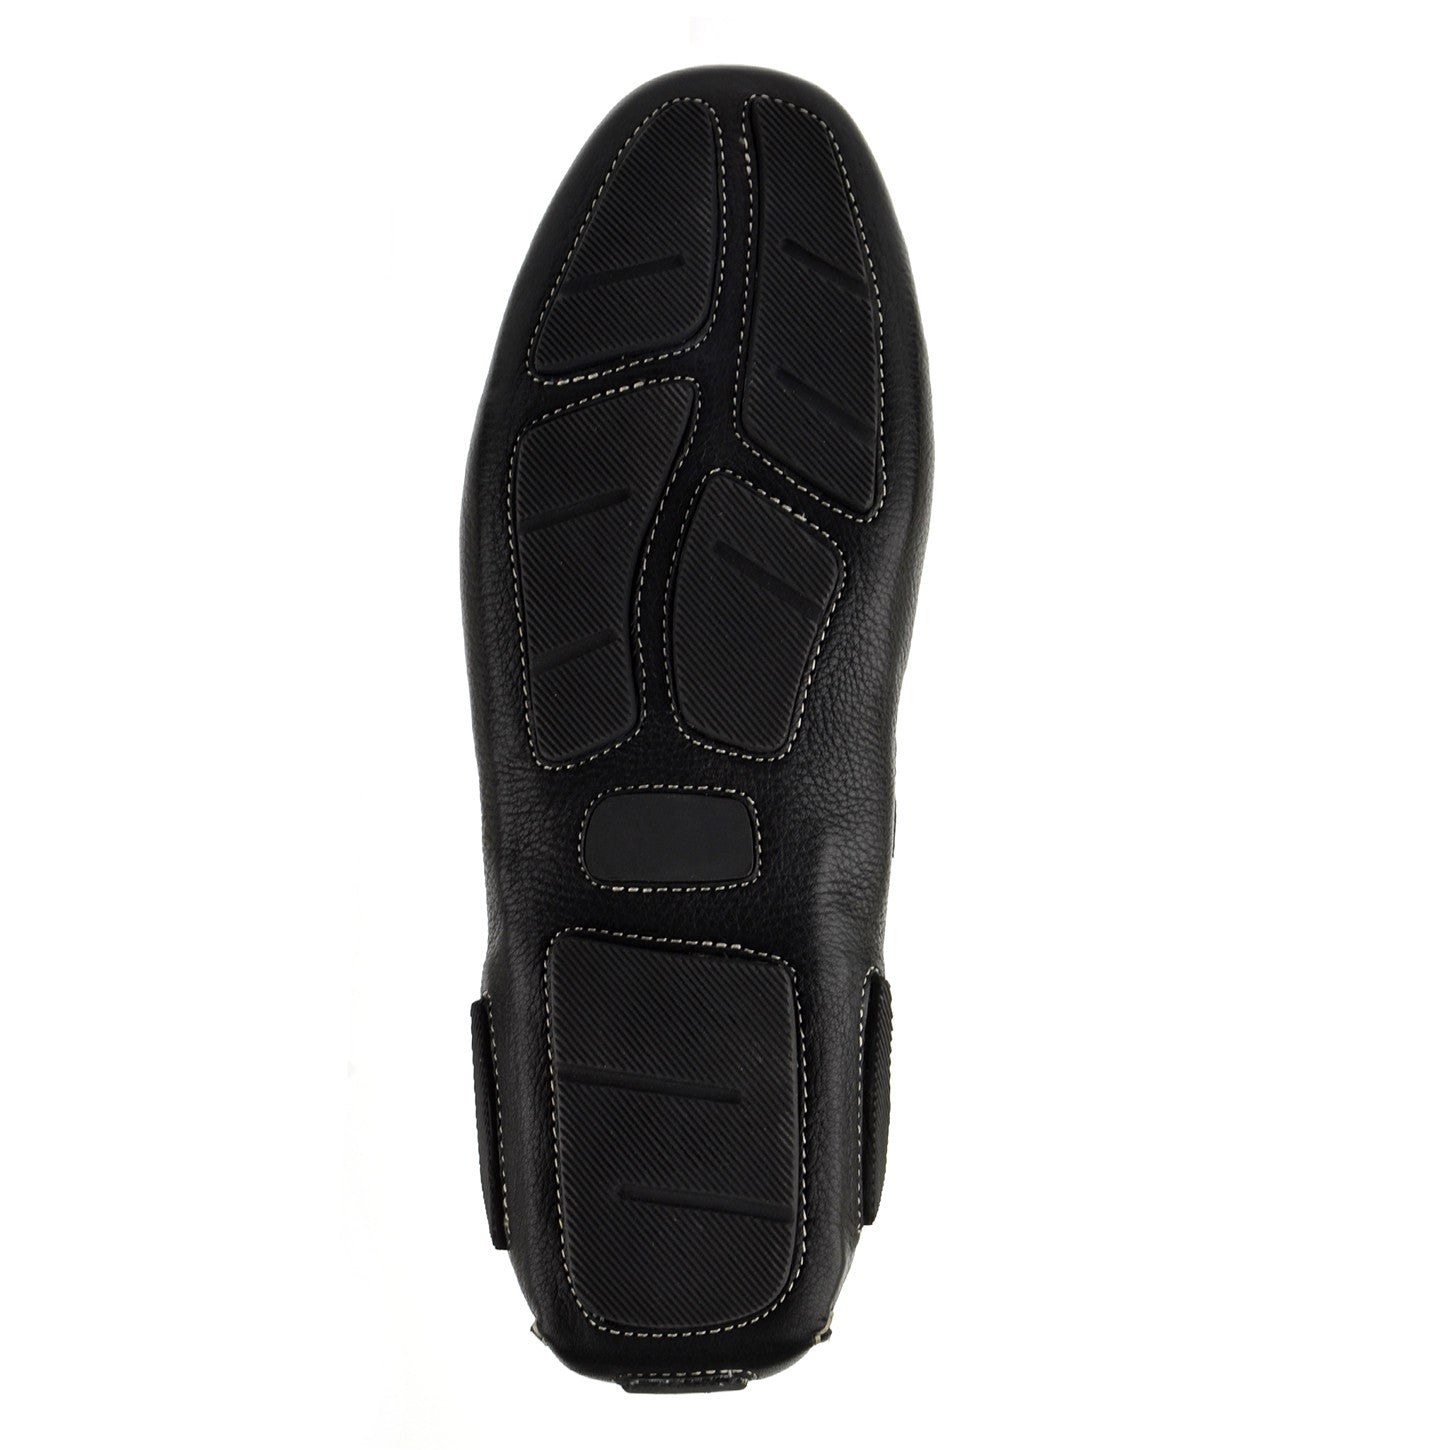 LM550 - Language Samen Men's Casual Black Drivers